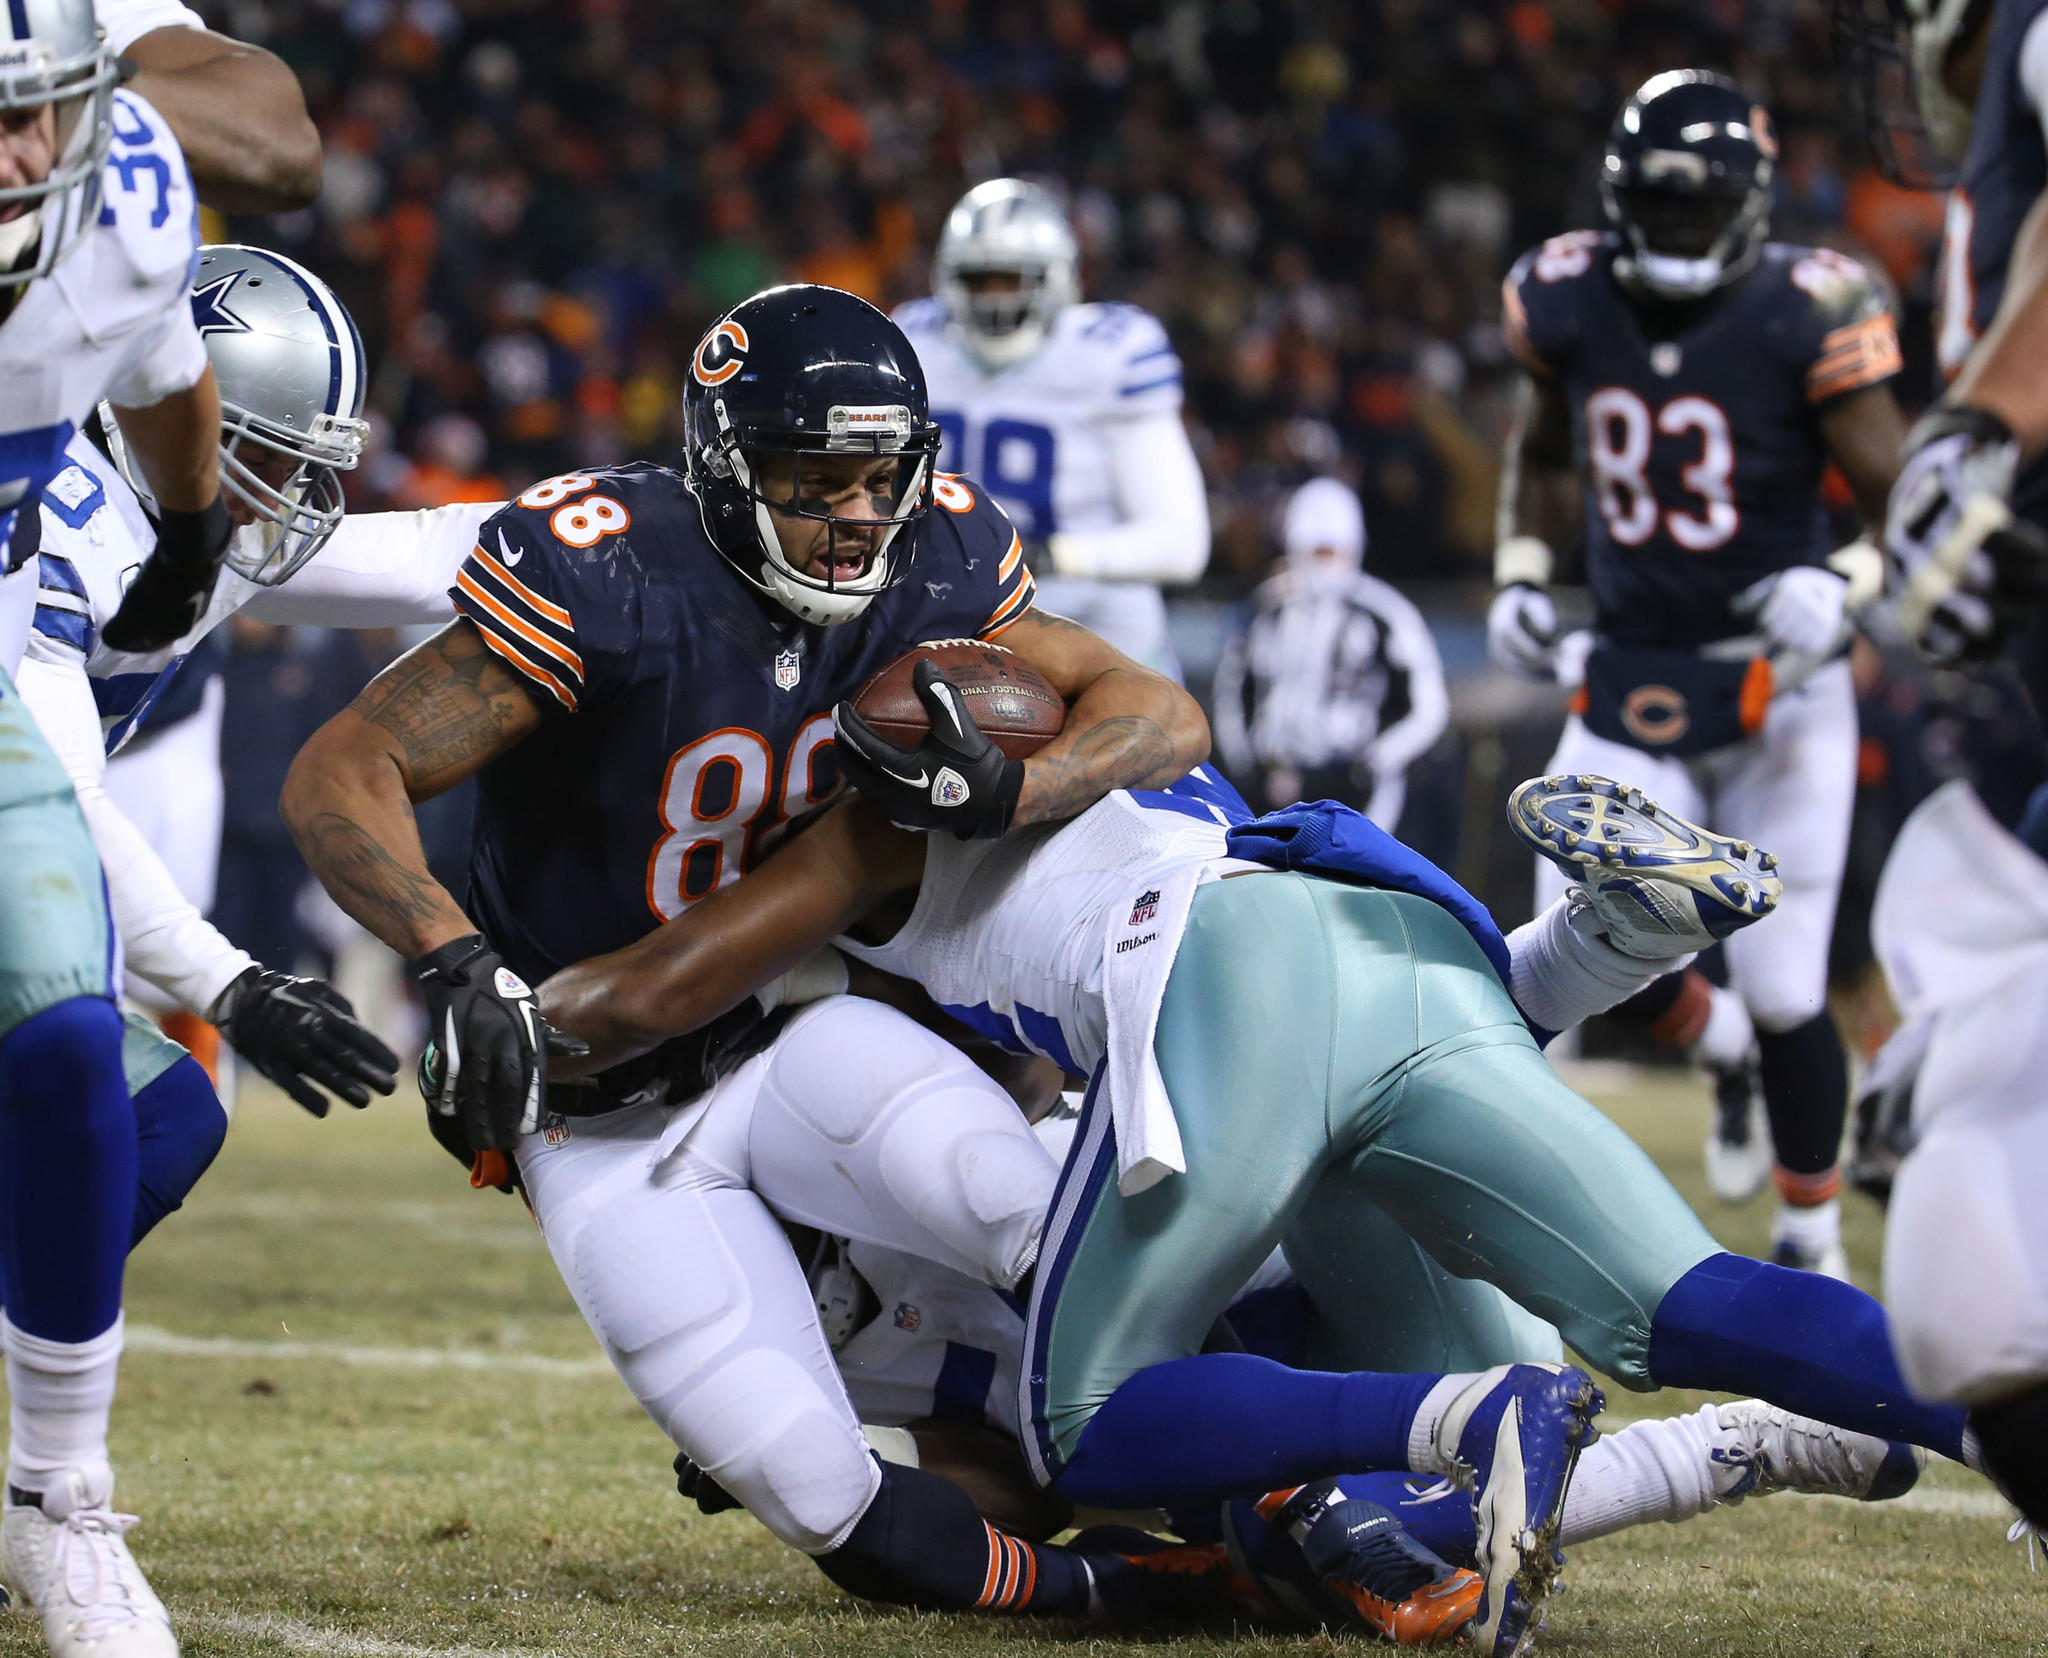 Bears tight end Dante Rosario (88) is brought down by the Dallas Cowboys defense.